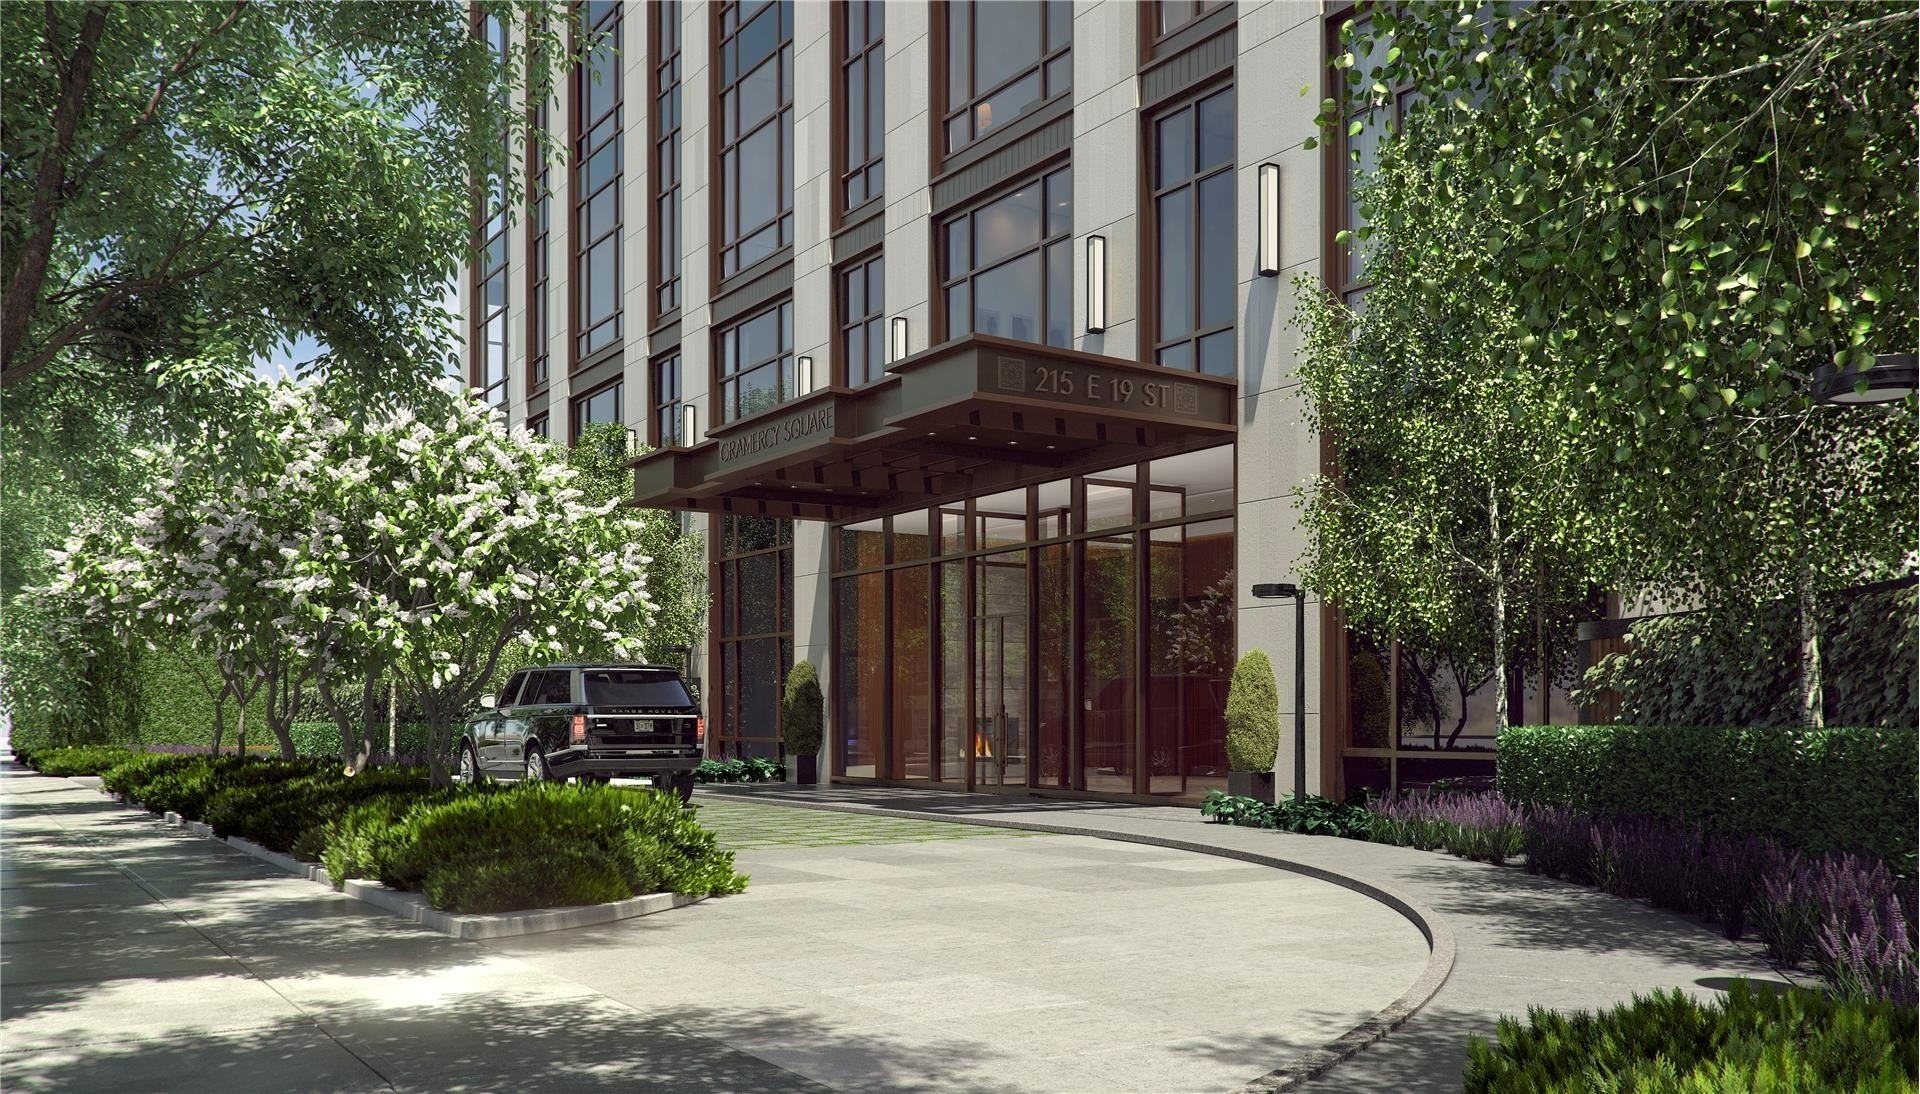 8. Condominiums for Sale at Gramercy Square, 215 East 19th St, 17A Gramercy Park, New York, NY 10003